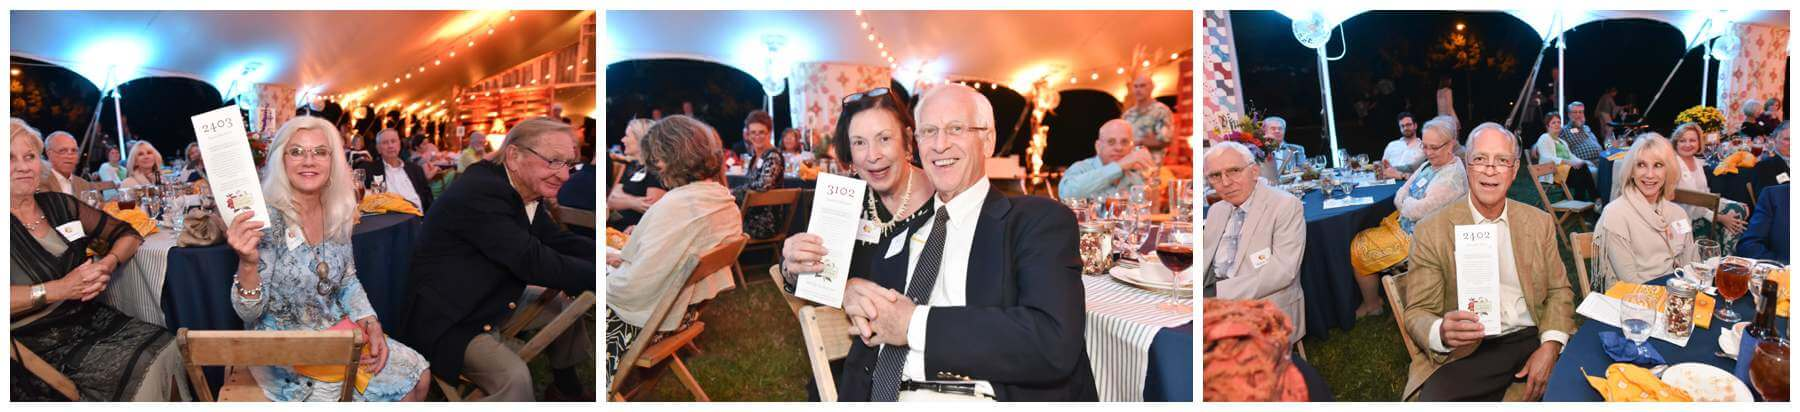 Knoxville Botanical Gardens Green Thumb Gala